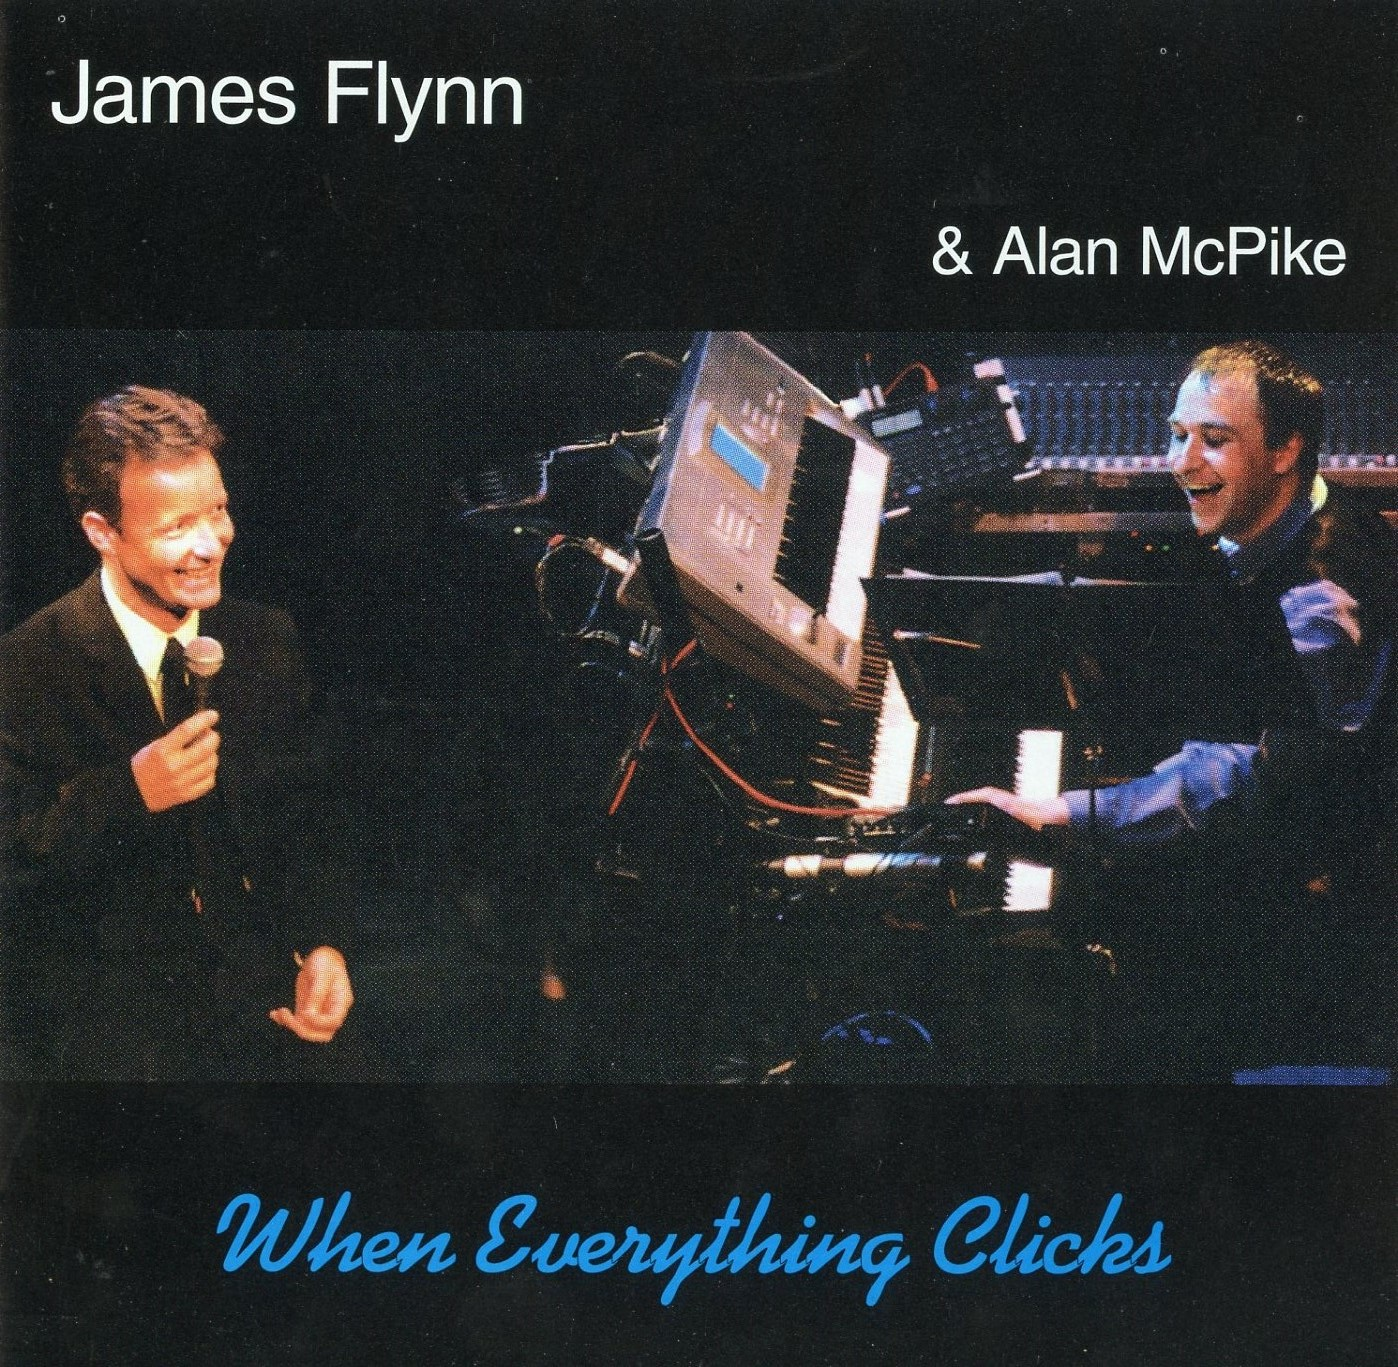 When everything clicks - Scottish pianist and musician Alan McPike and I have been friends and musical collaborators for over 20 year. This live recording is one of the reasons why. We just connect musically and can improvise and have fun but stay on the same page. He has always been a joy to perform with and the evening of this performance was no exception.